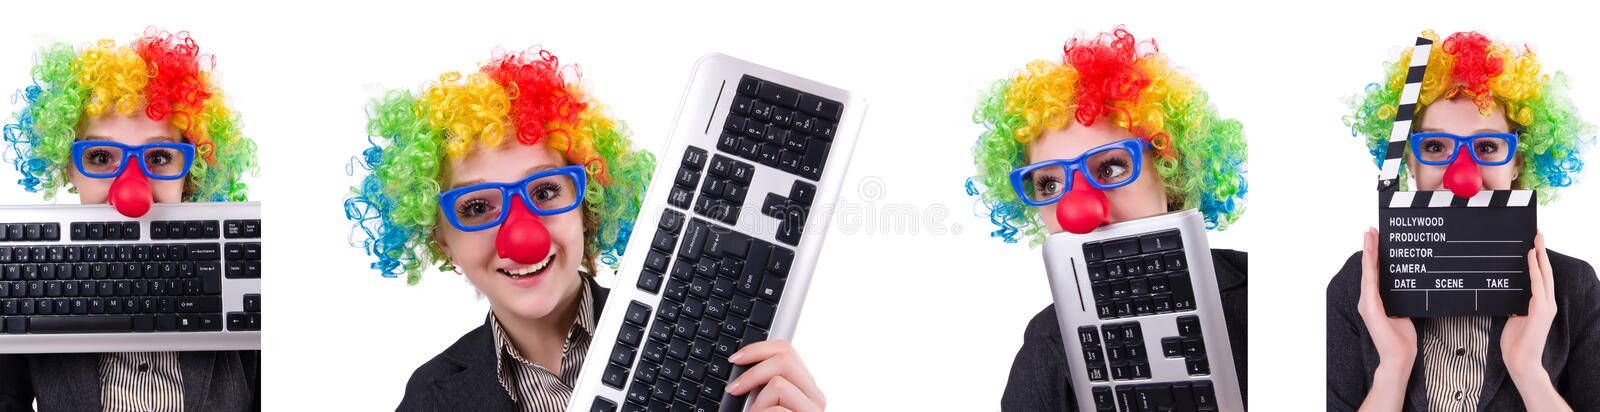 The businessman with clown wig isolated on white royalty free stock image